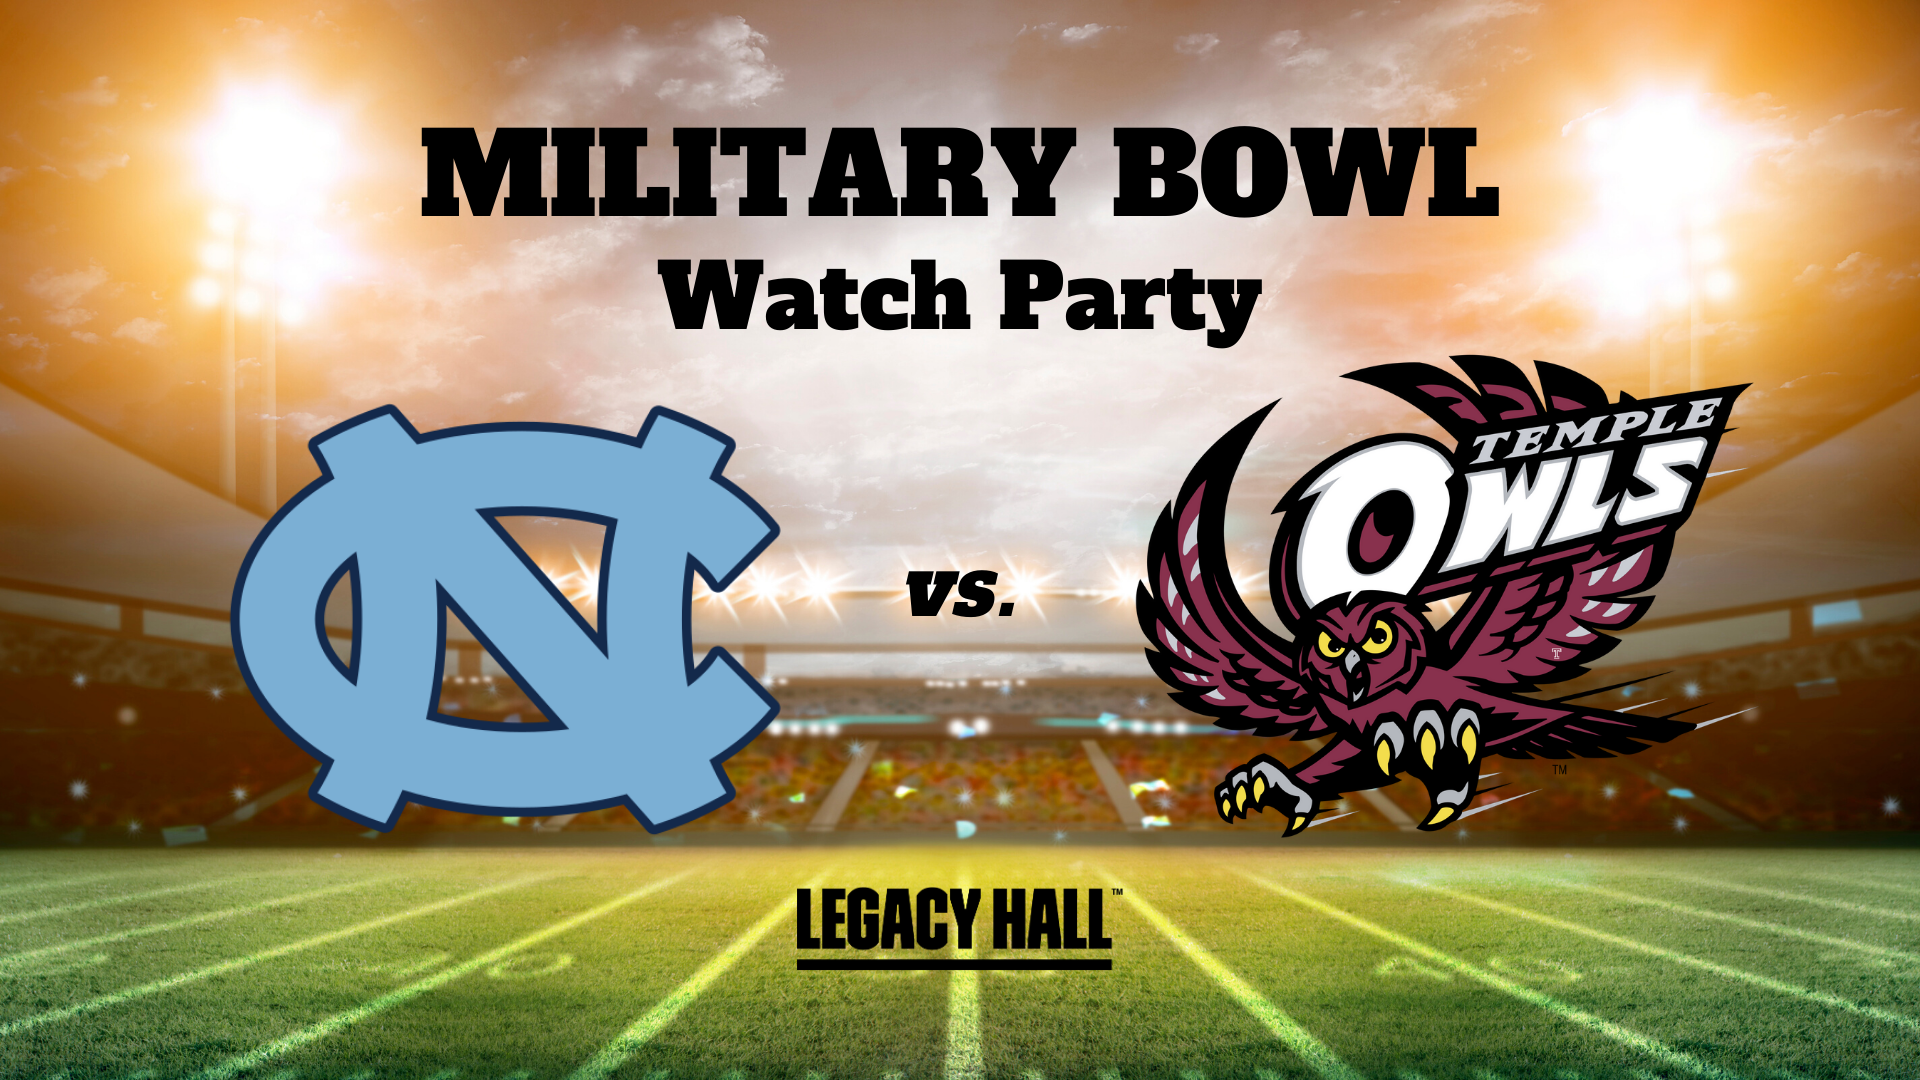 Military Bowl Watch Party - hero